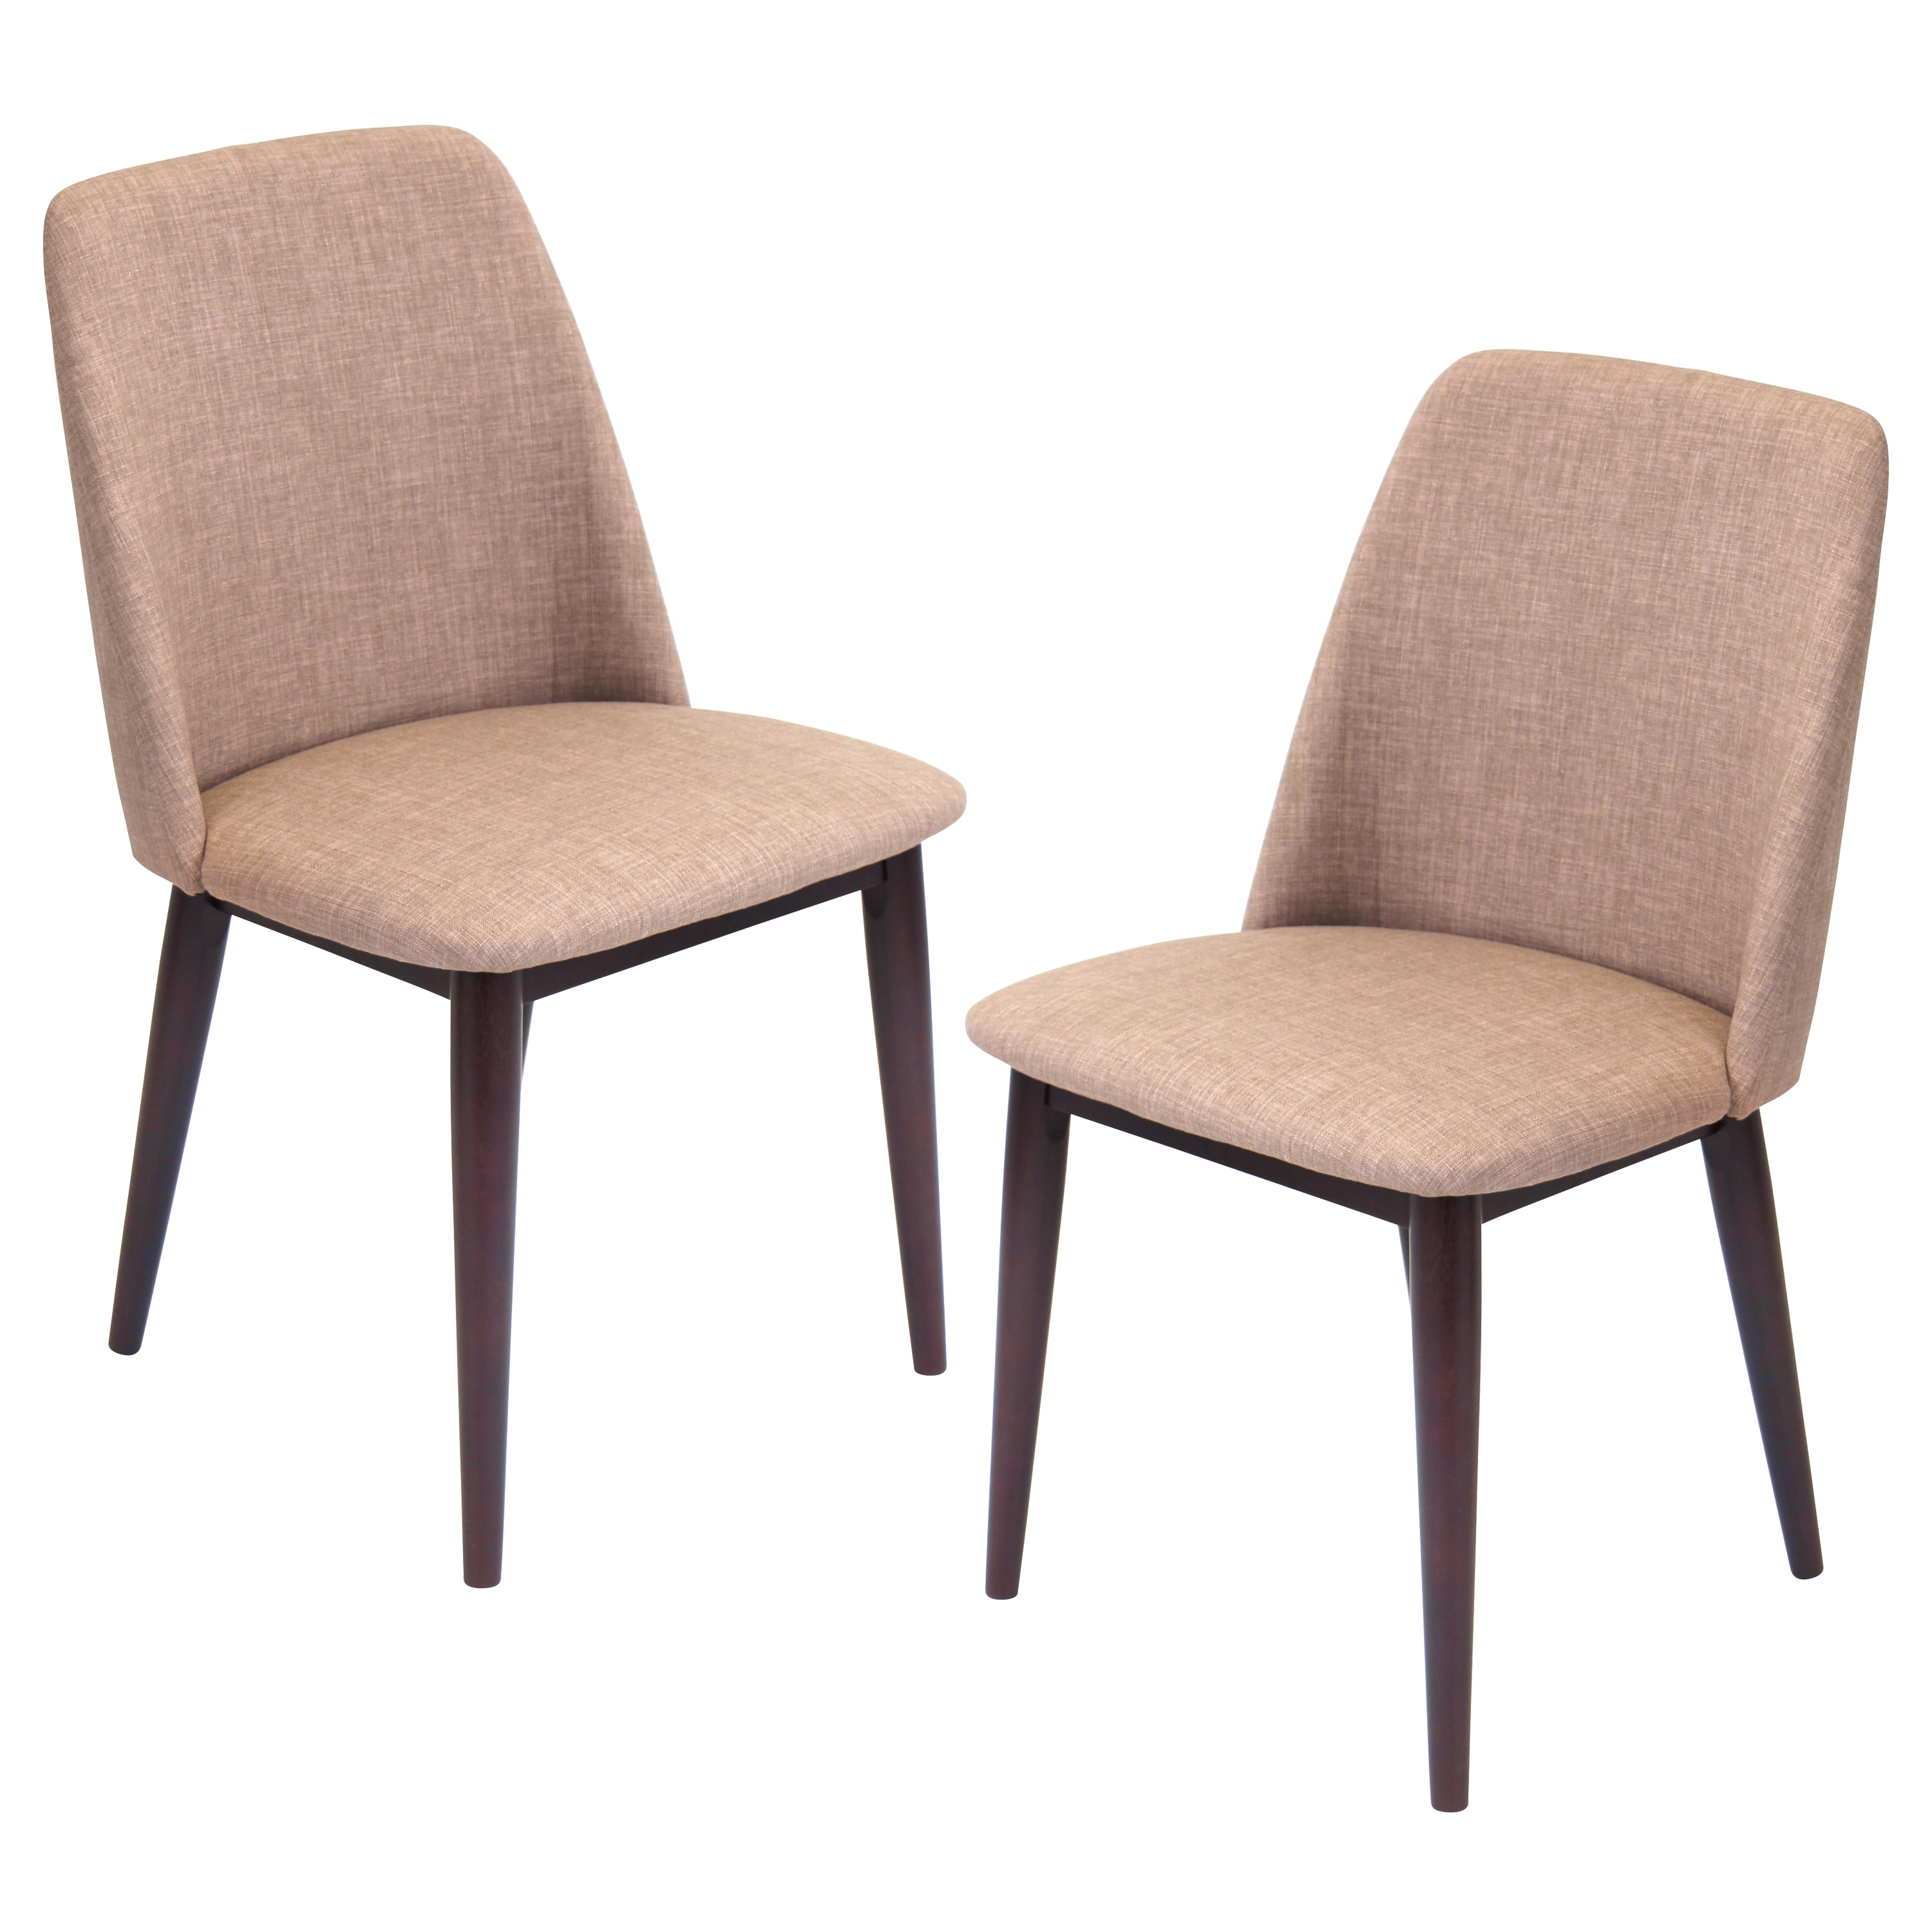 dining chairs overstock cars table and shop tintori mid century modern in wood fabric set of 2 free shipping on orders over 45 com 9571058